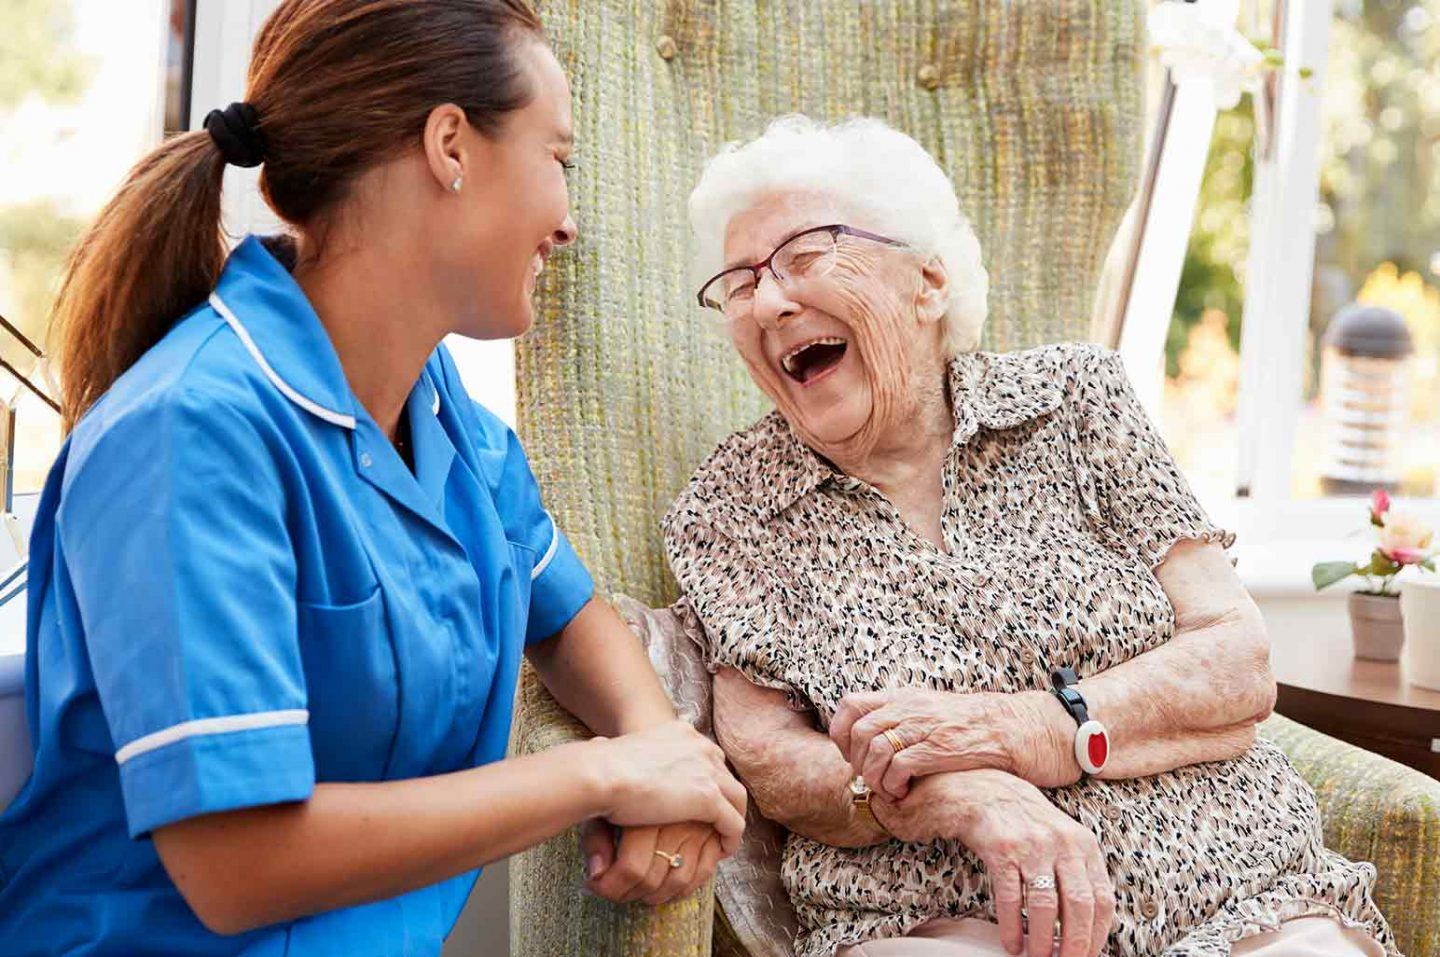 Myths and Truths About Working in Senior Care